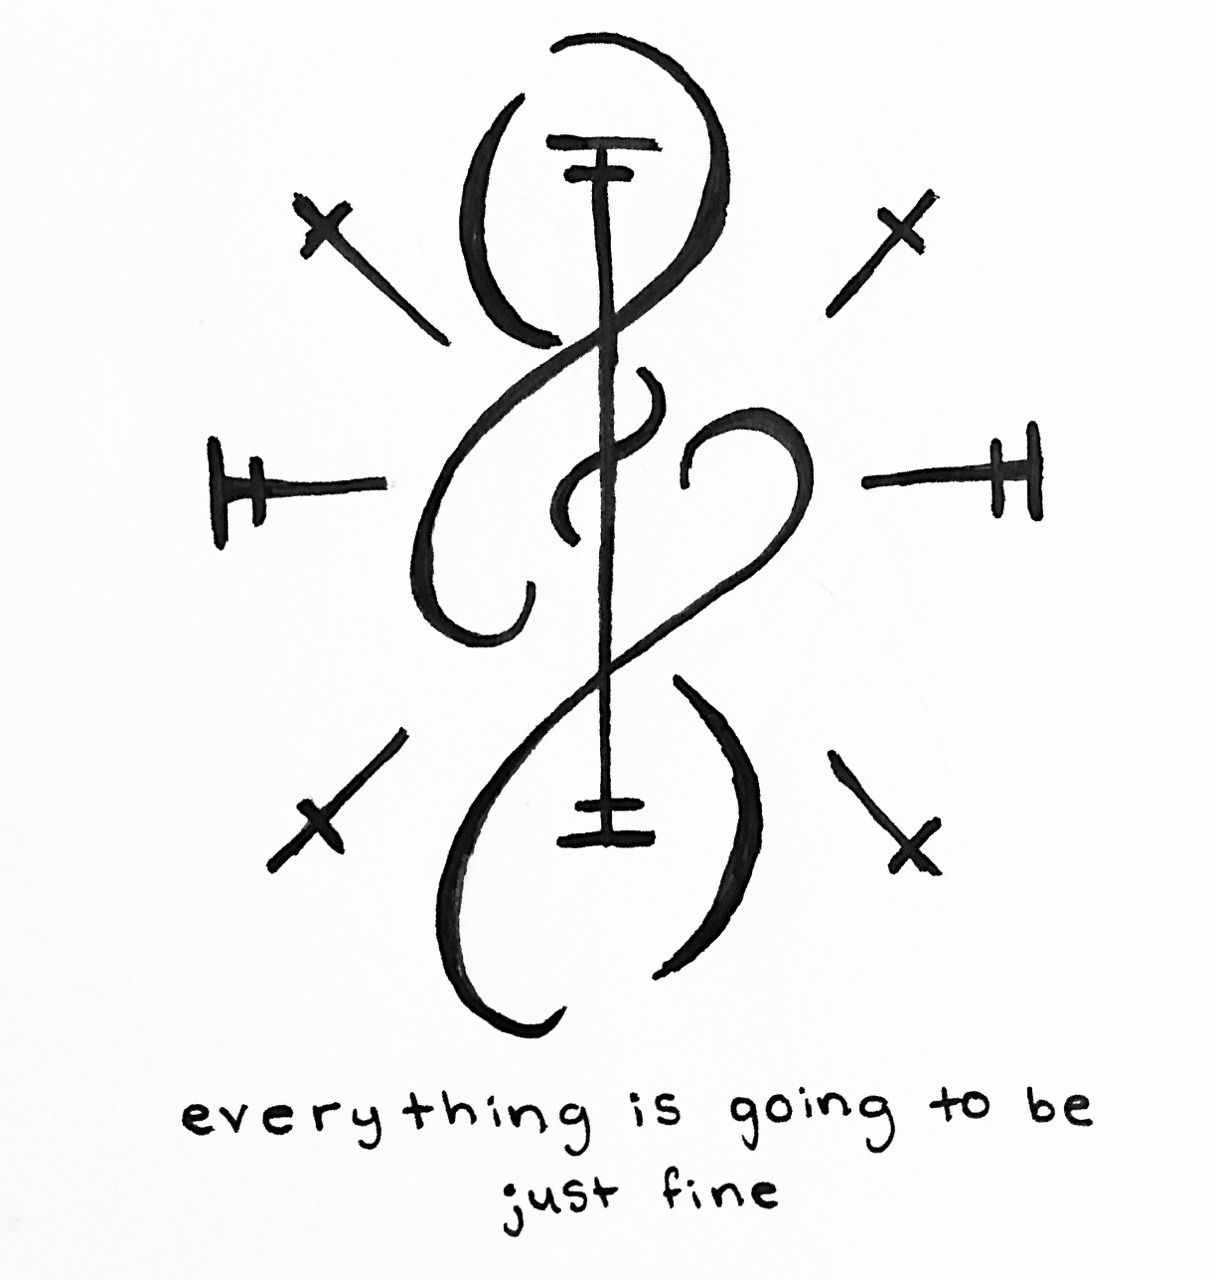 Power of three everything is going to be just fine sigil for power of three everything is going to be just fine fantasy tattoosmagic symbolsanonymouswitchcraftmagickwiccaprayer buycottarizona Image collections